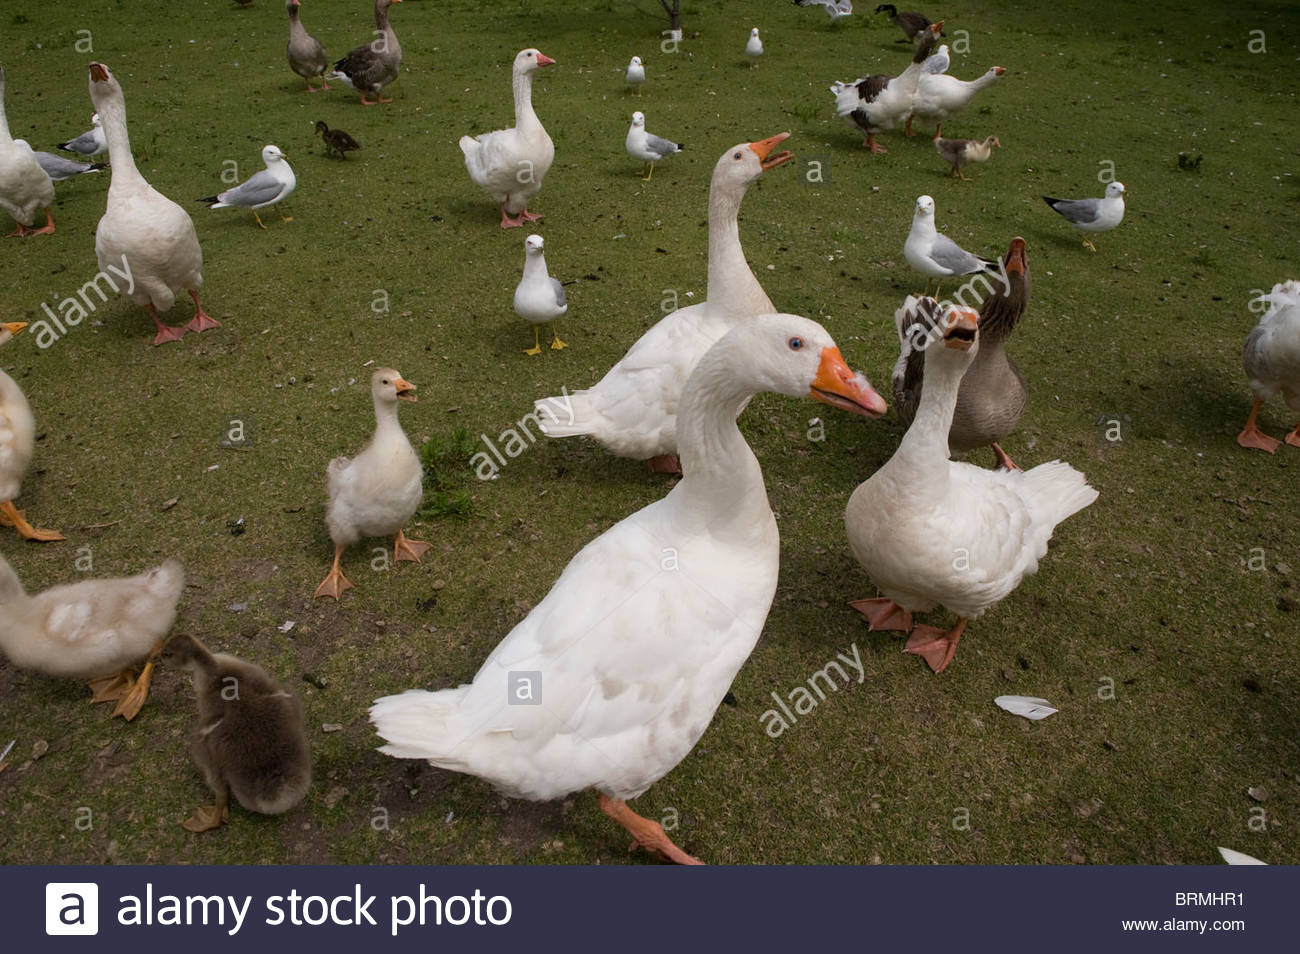 Domestic geese and goslings in Walker, MN. - Stock Image